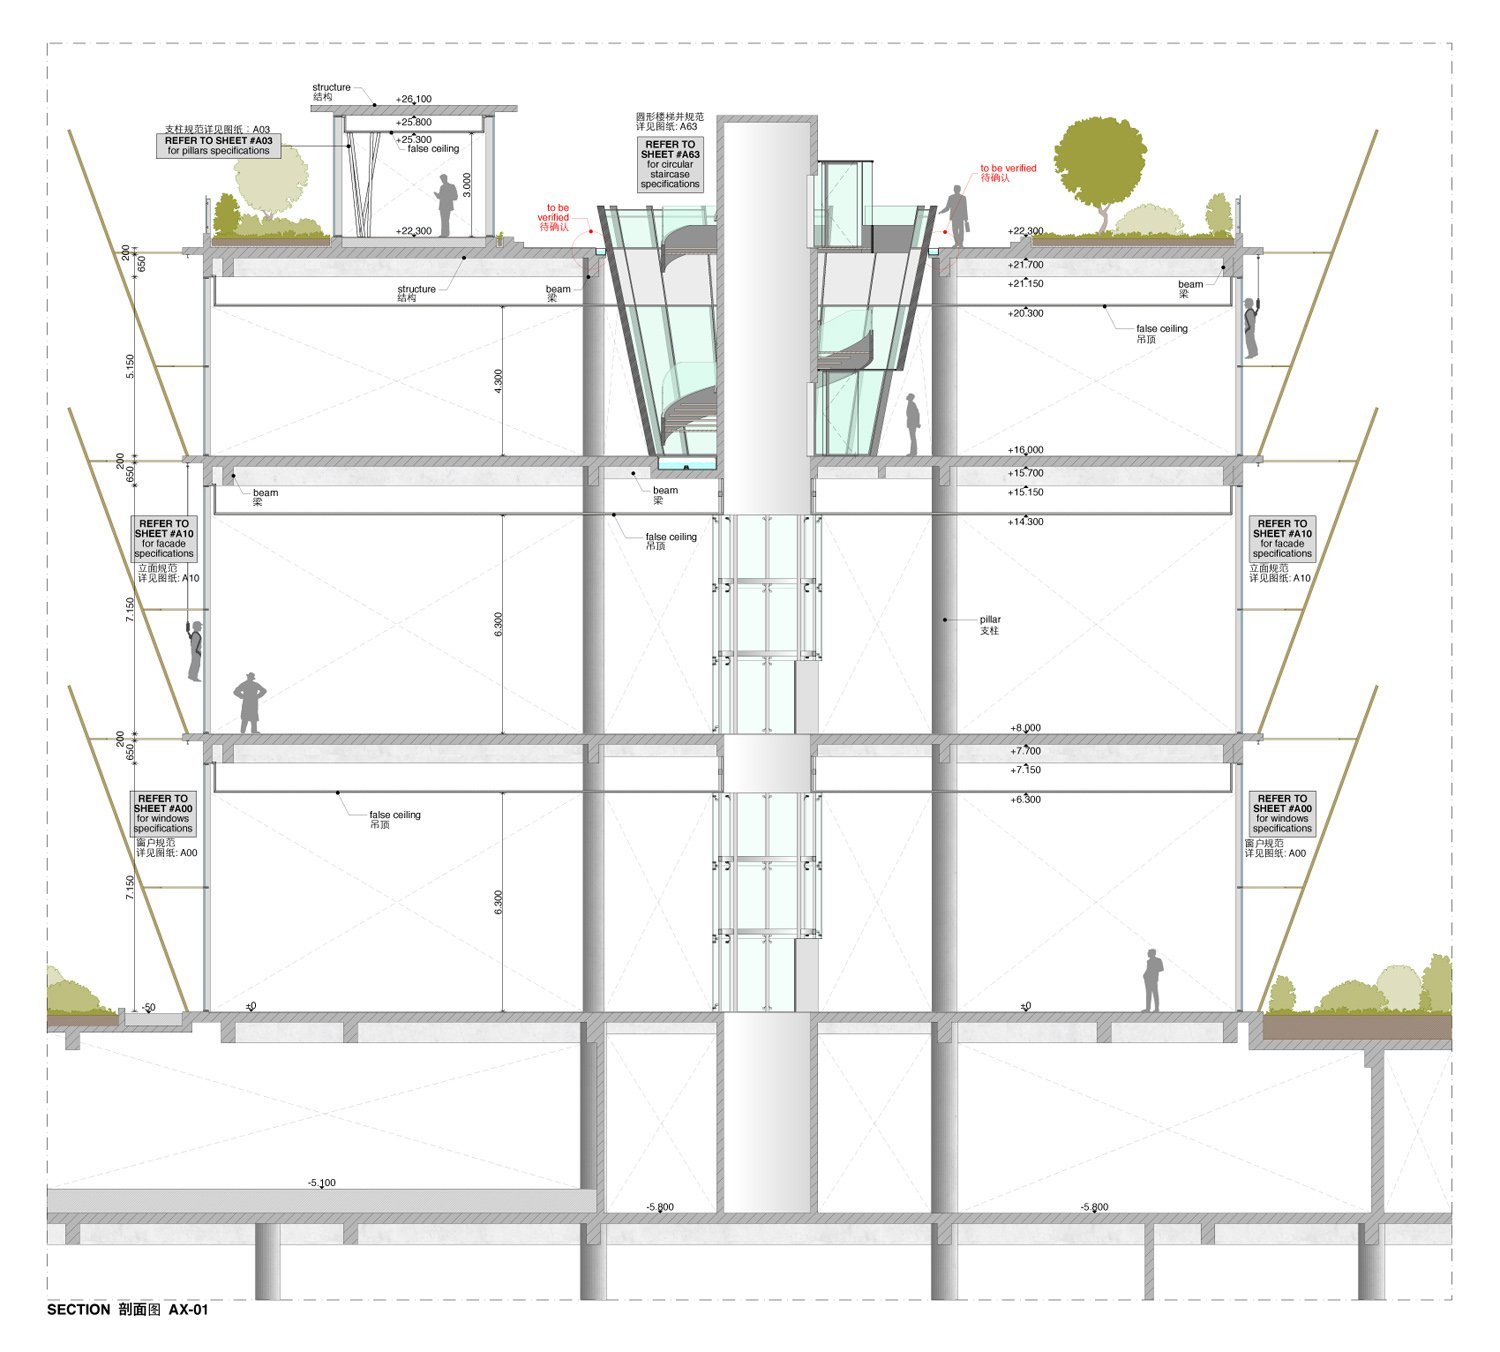 Section drawing duccio grassi architects}